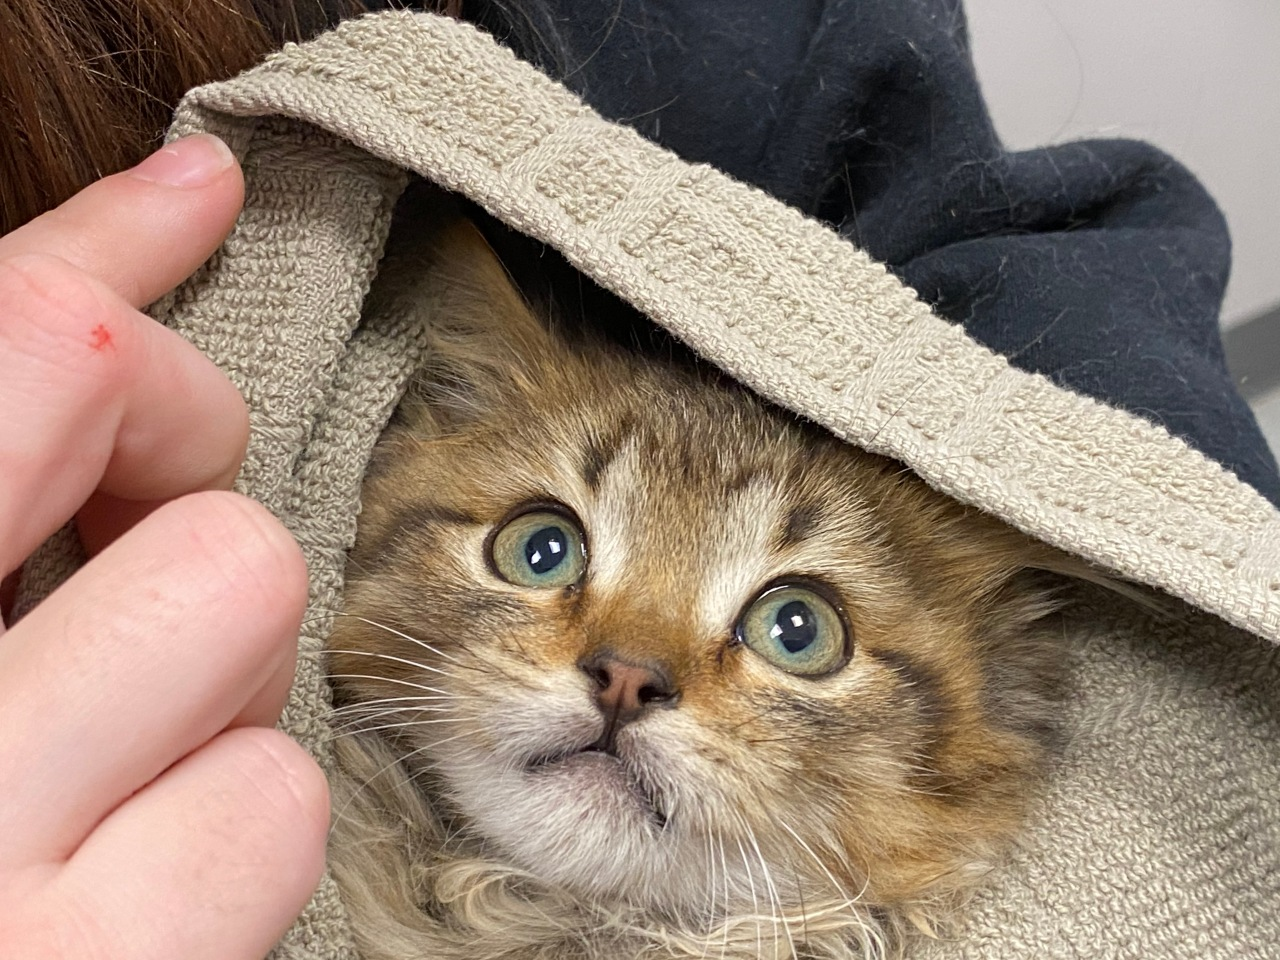 Man uses warm water to save kitten frozen to truck tire in Colorado